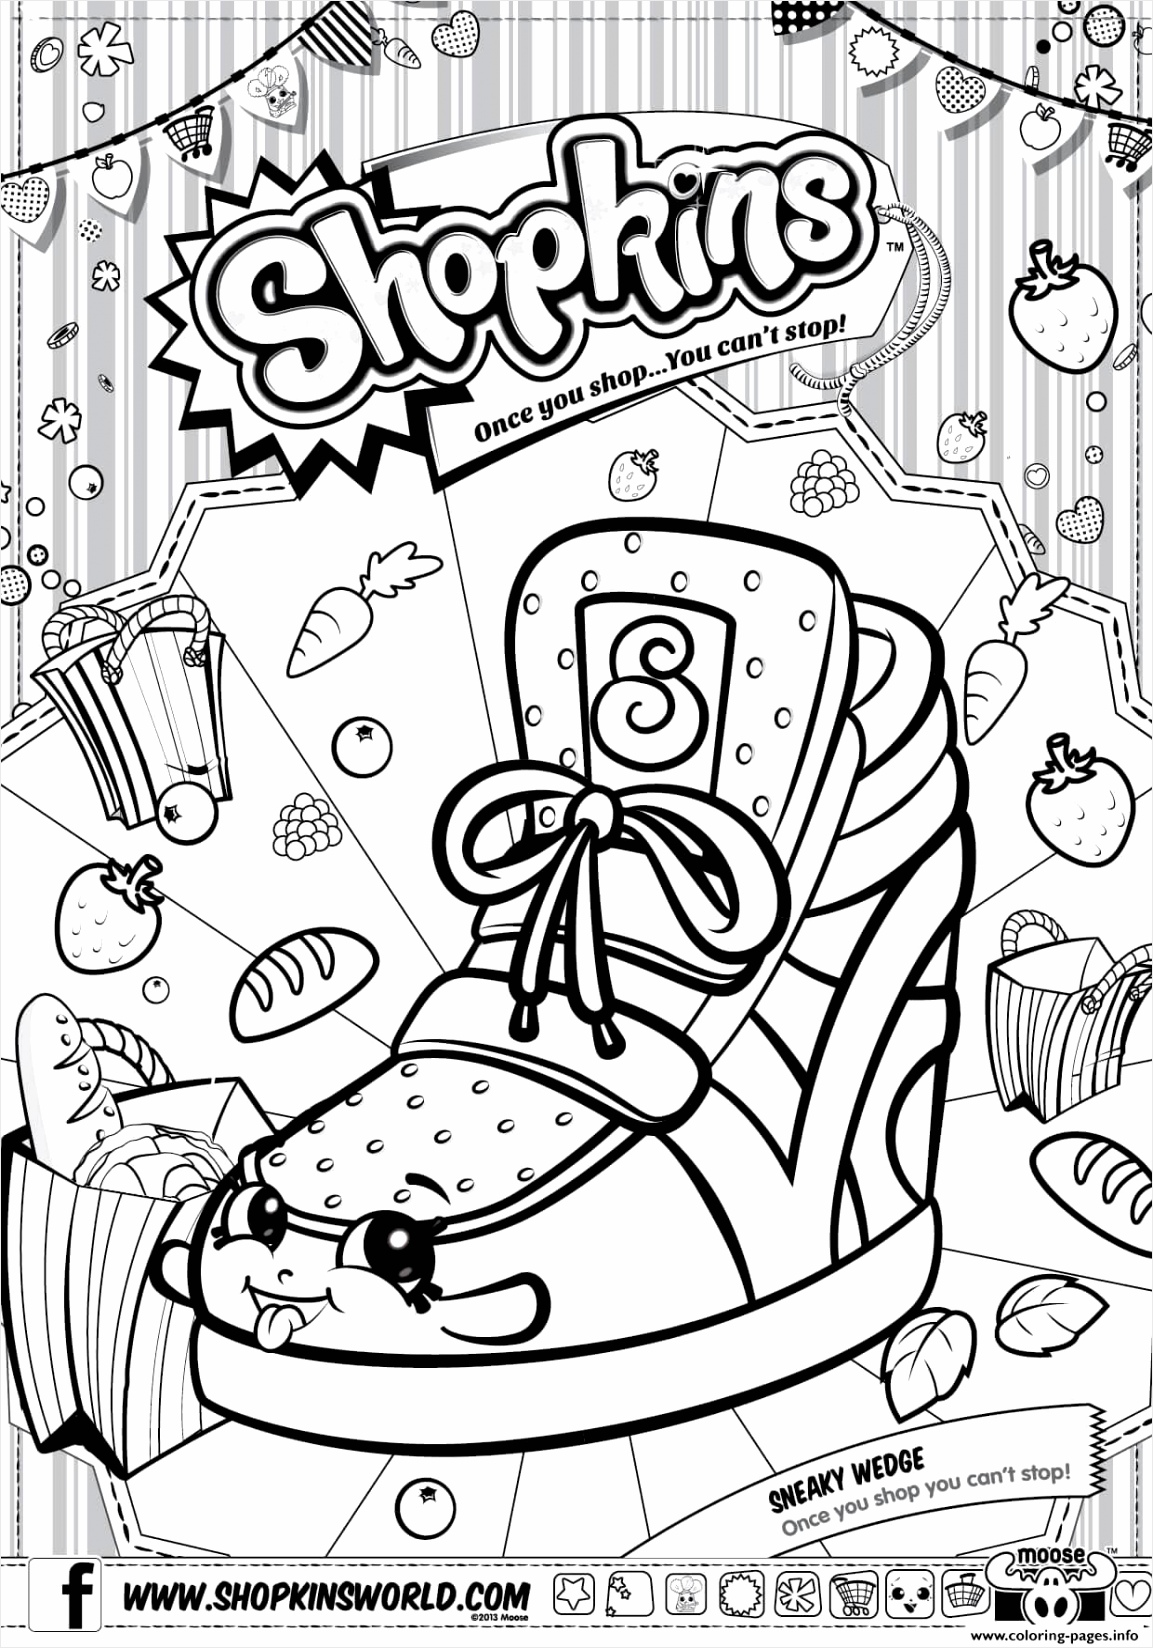 yoohoo and friends coloring pages 5 oitaa